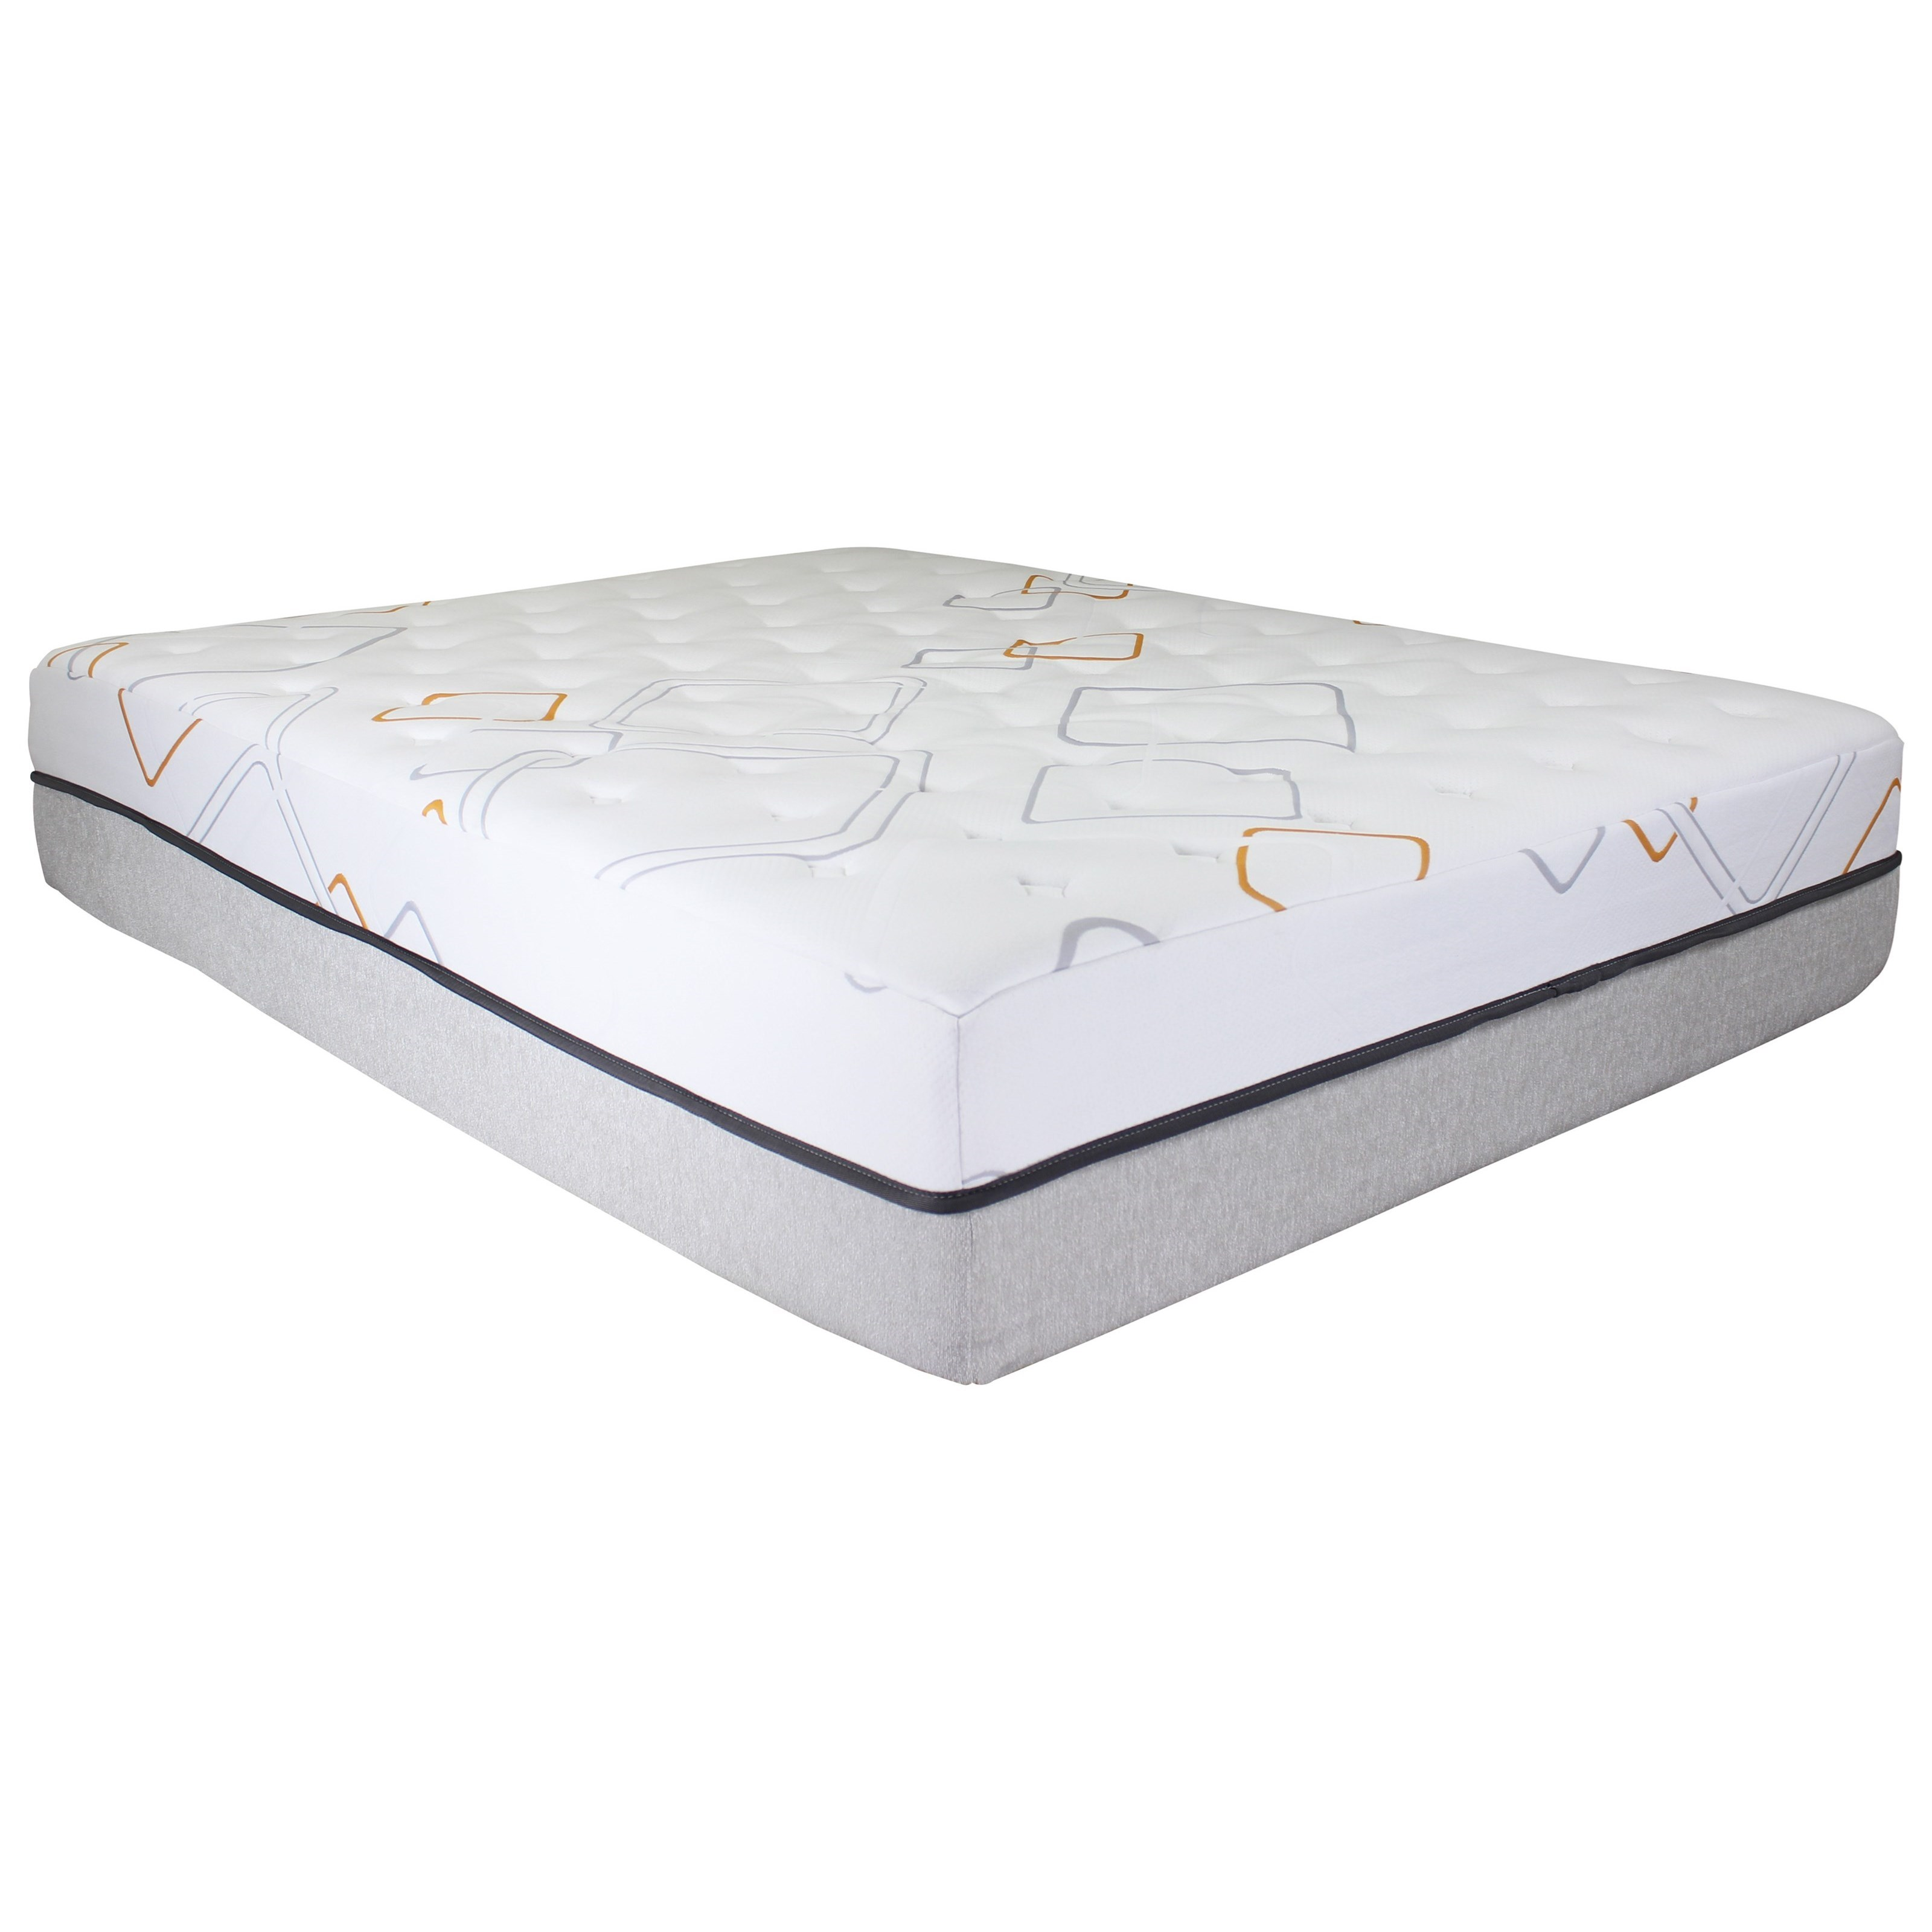 queen number item products mattress nights ultimate plush starry hybrid simmons